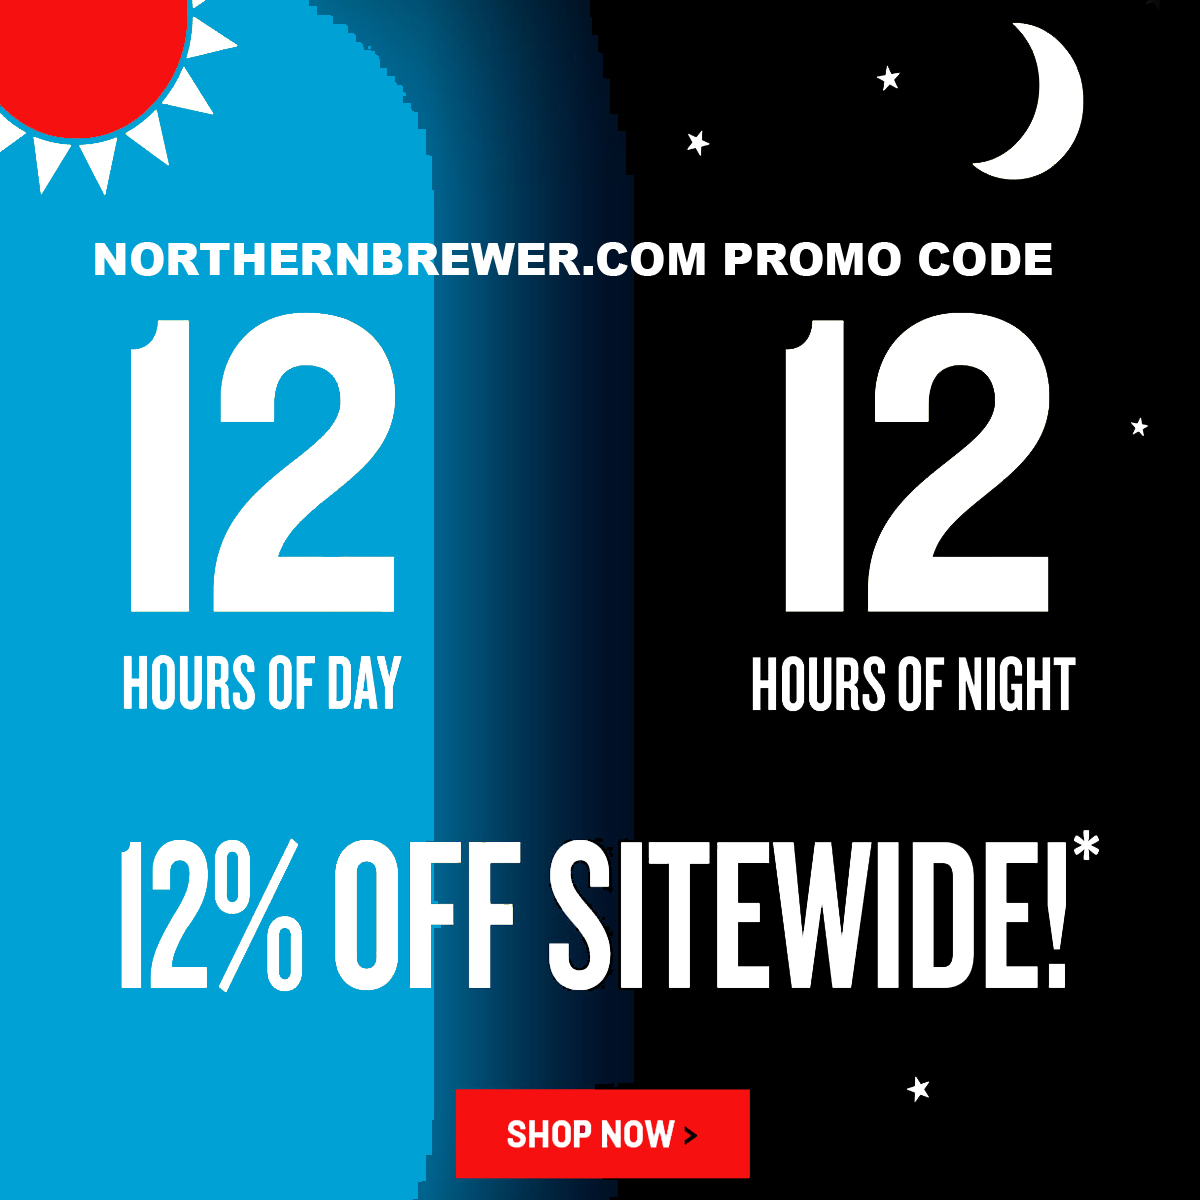 Northern Brewer Save 12% Site Wide at Northern Brewer With This NorthernBrewer.com Promo Code Coupon Code